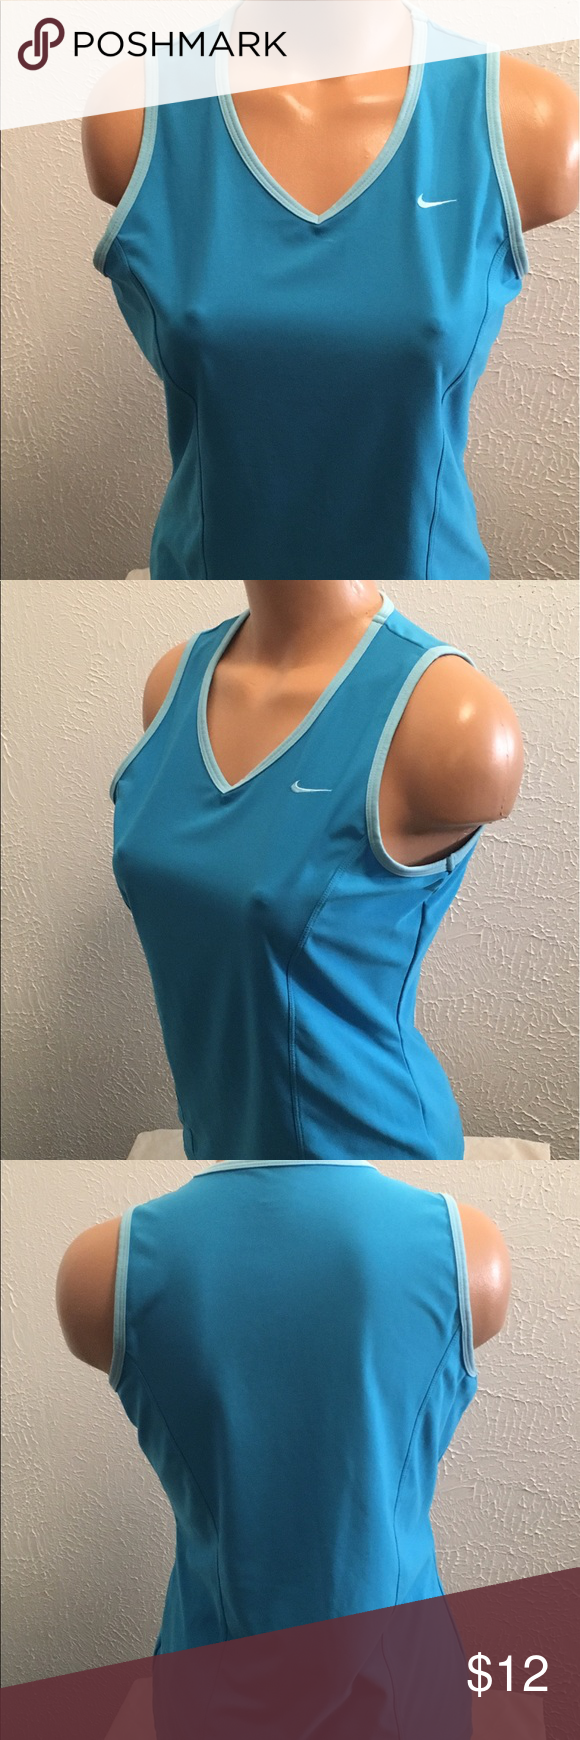 """NIKE Large 12-14 Tank Top Exercise Athletic Blue Nike. Large 12-14. Blue. Tank top. Excellent condition no stains or holes. Stretch. Chest: 37"""". Length: 23 3/5"""". 88% Polyester and 12% spandex. Nike Tops Tank Tops"""